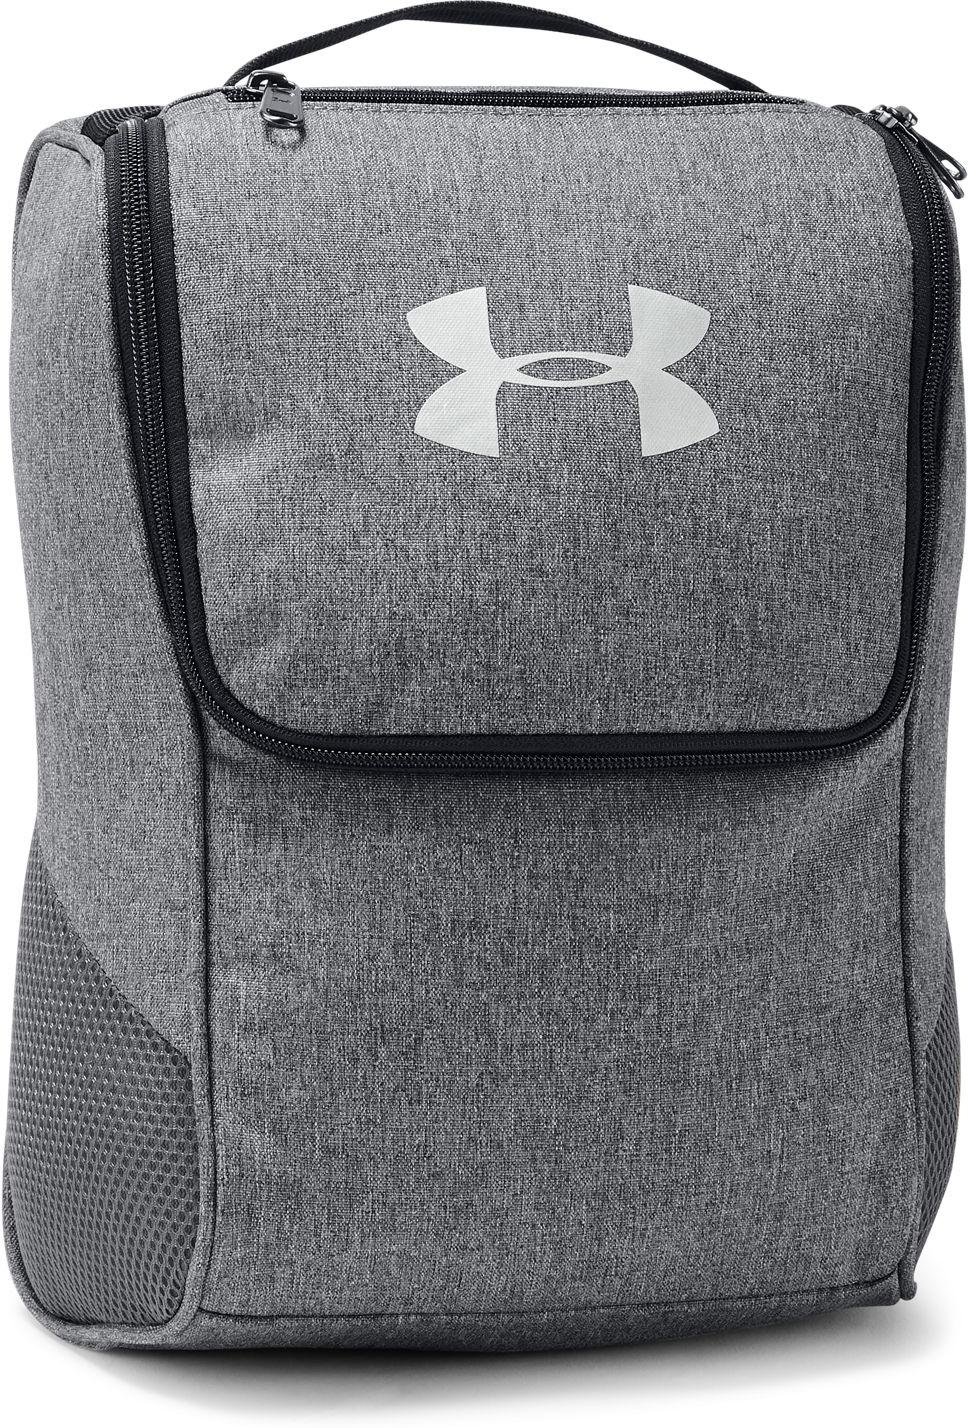 Torba za obuću Under Armour UA Shoe Bag